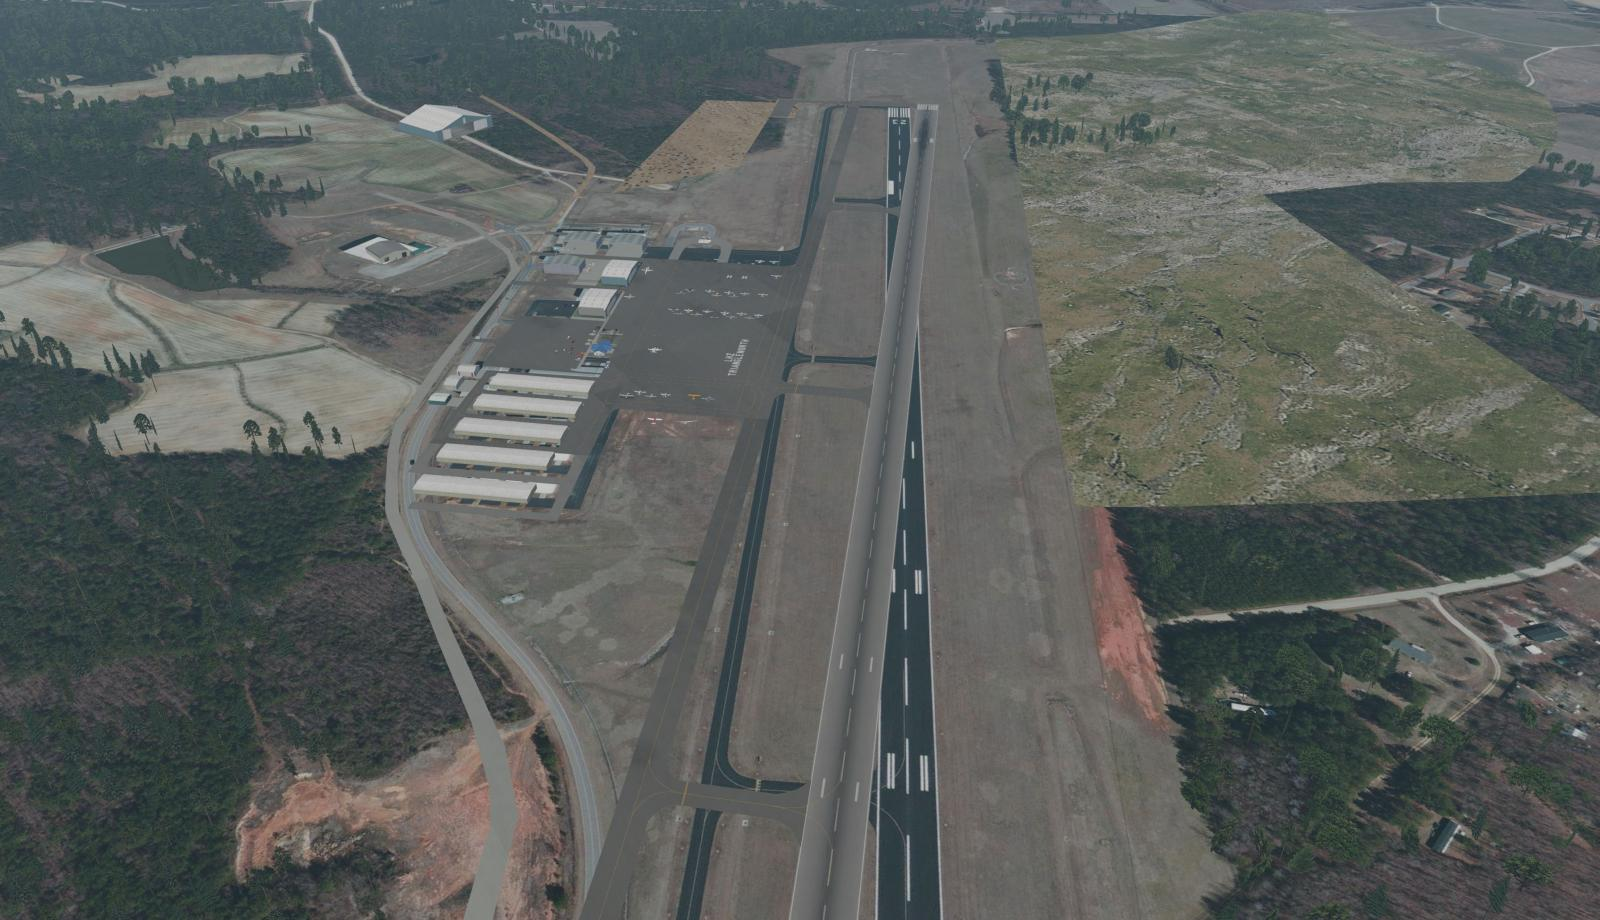 How Can I Fix This? Misaligned Airport - Scenery Development